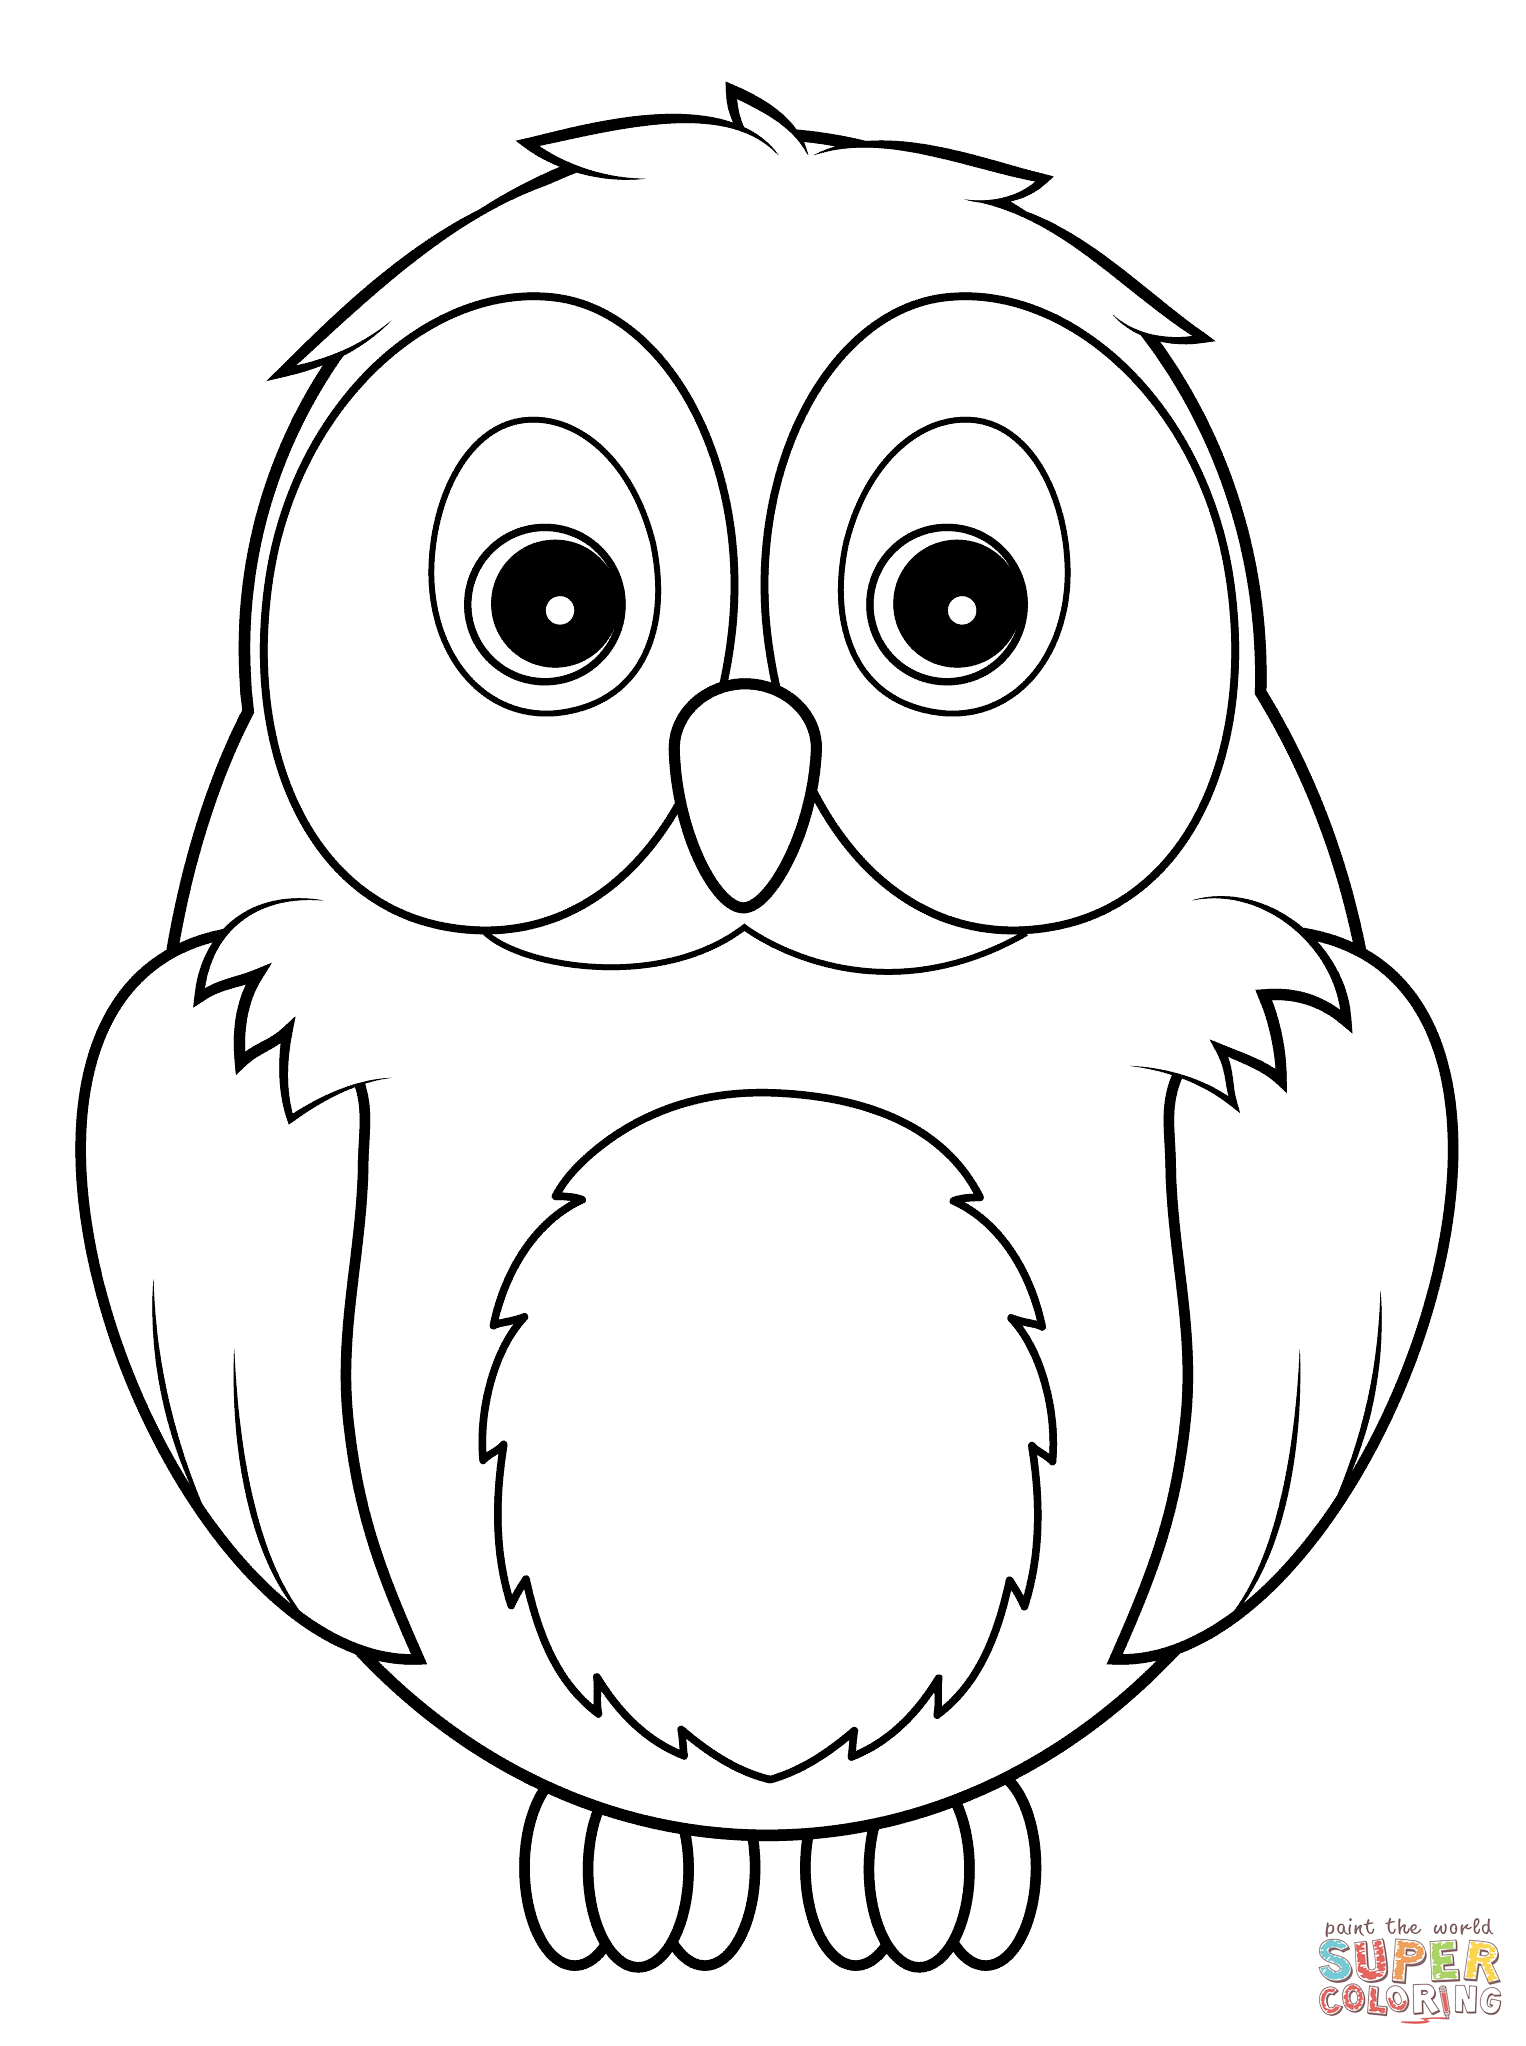 picture of owls to color free printable owl coloring pages for kids animal place to picture color owls of